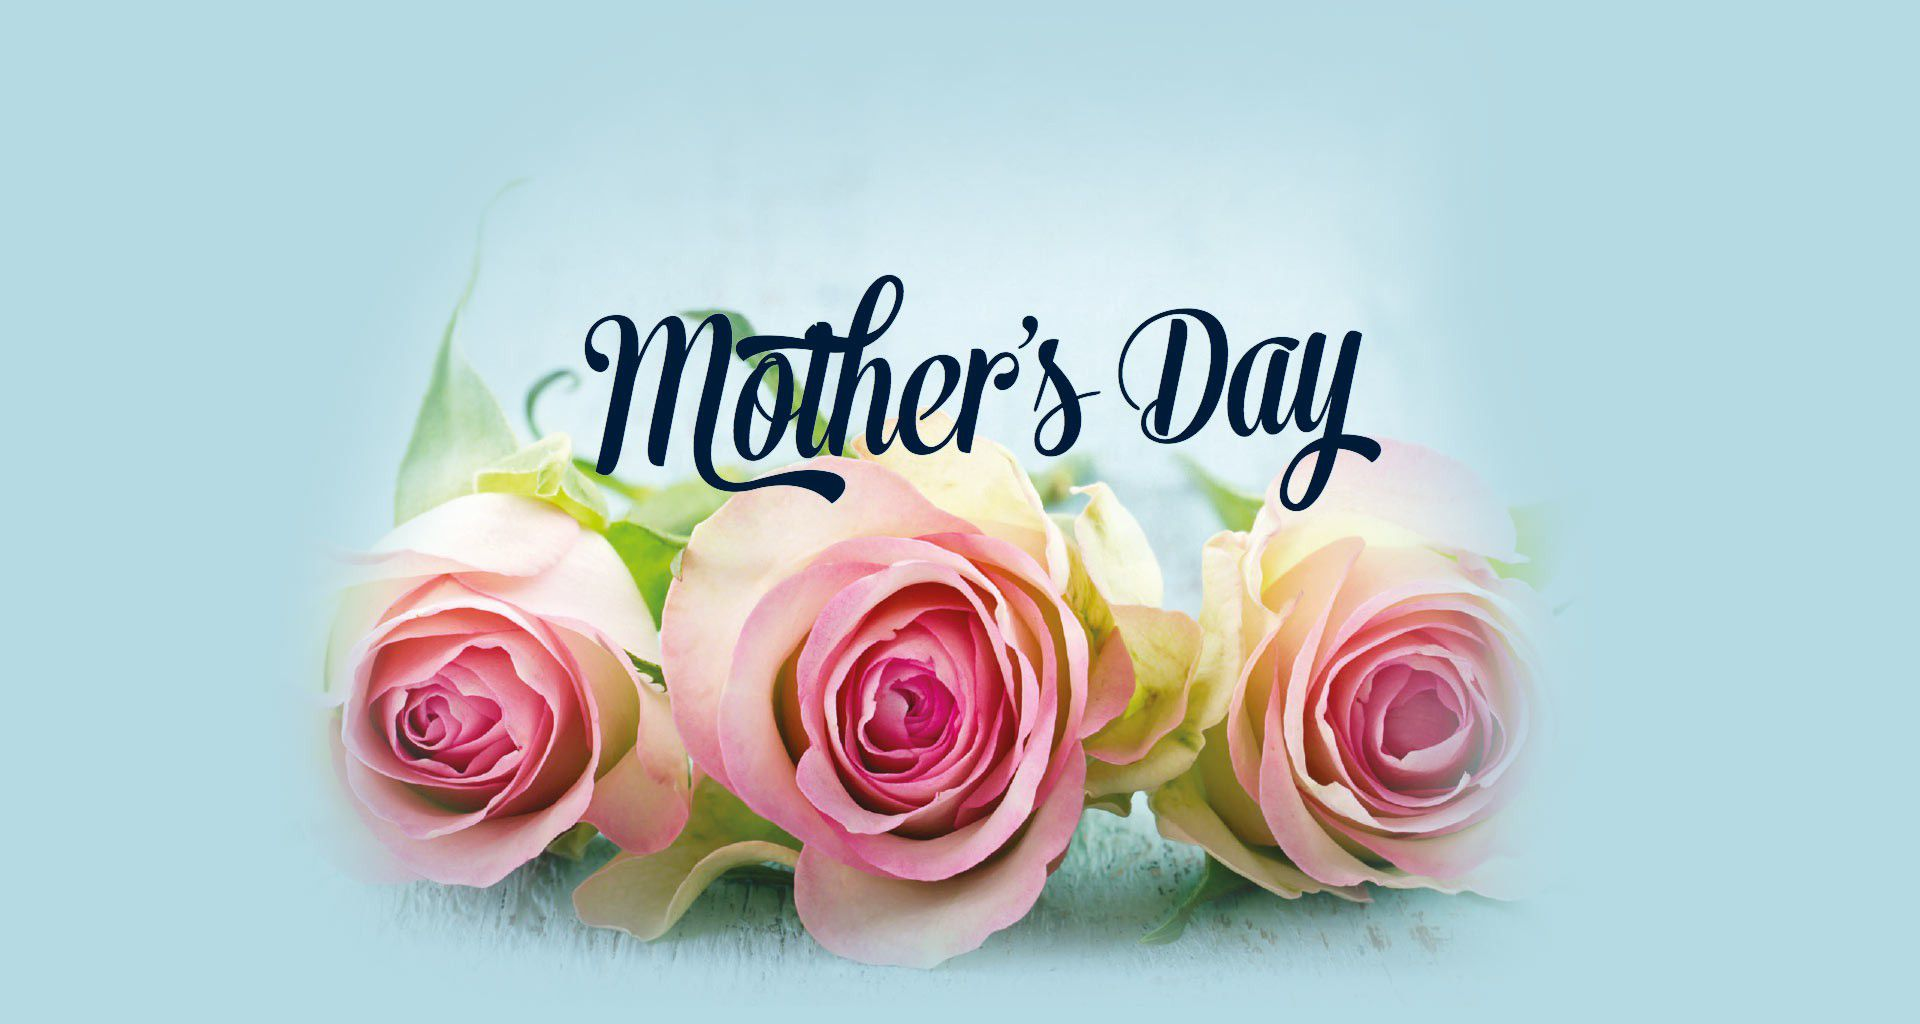 Mother's Day Wallpaper for Whatsapp